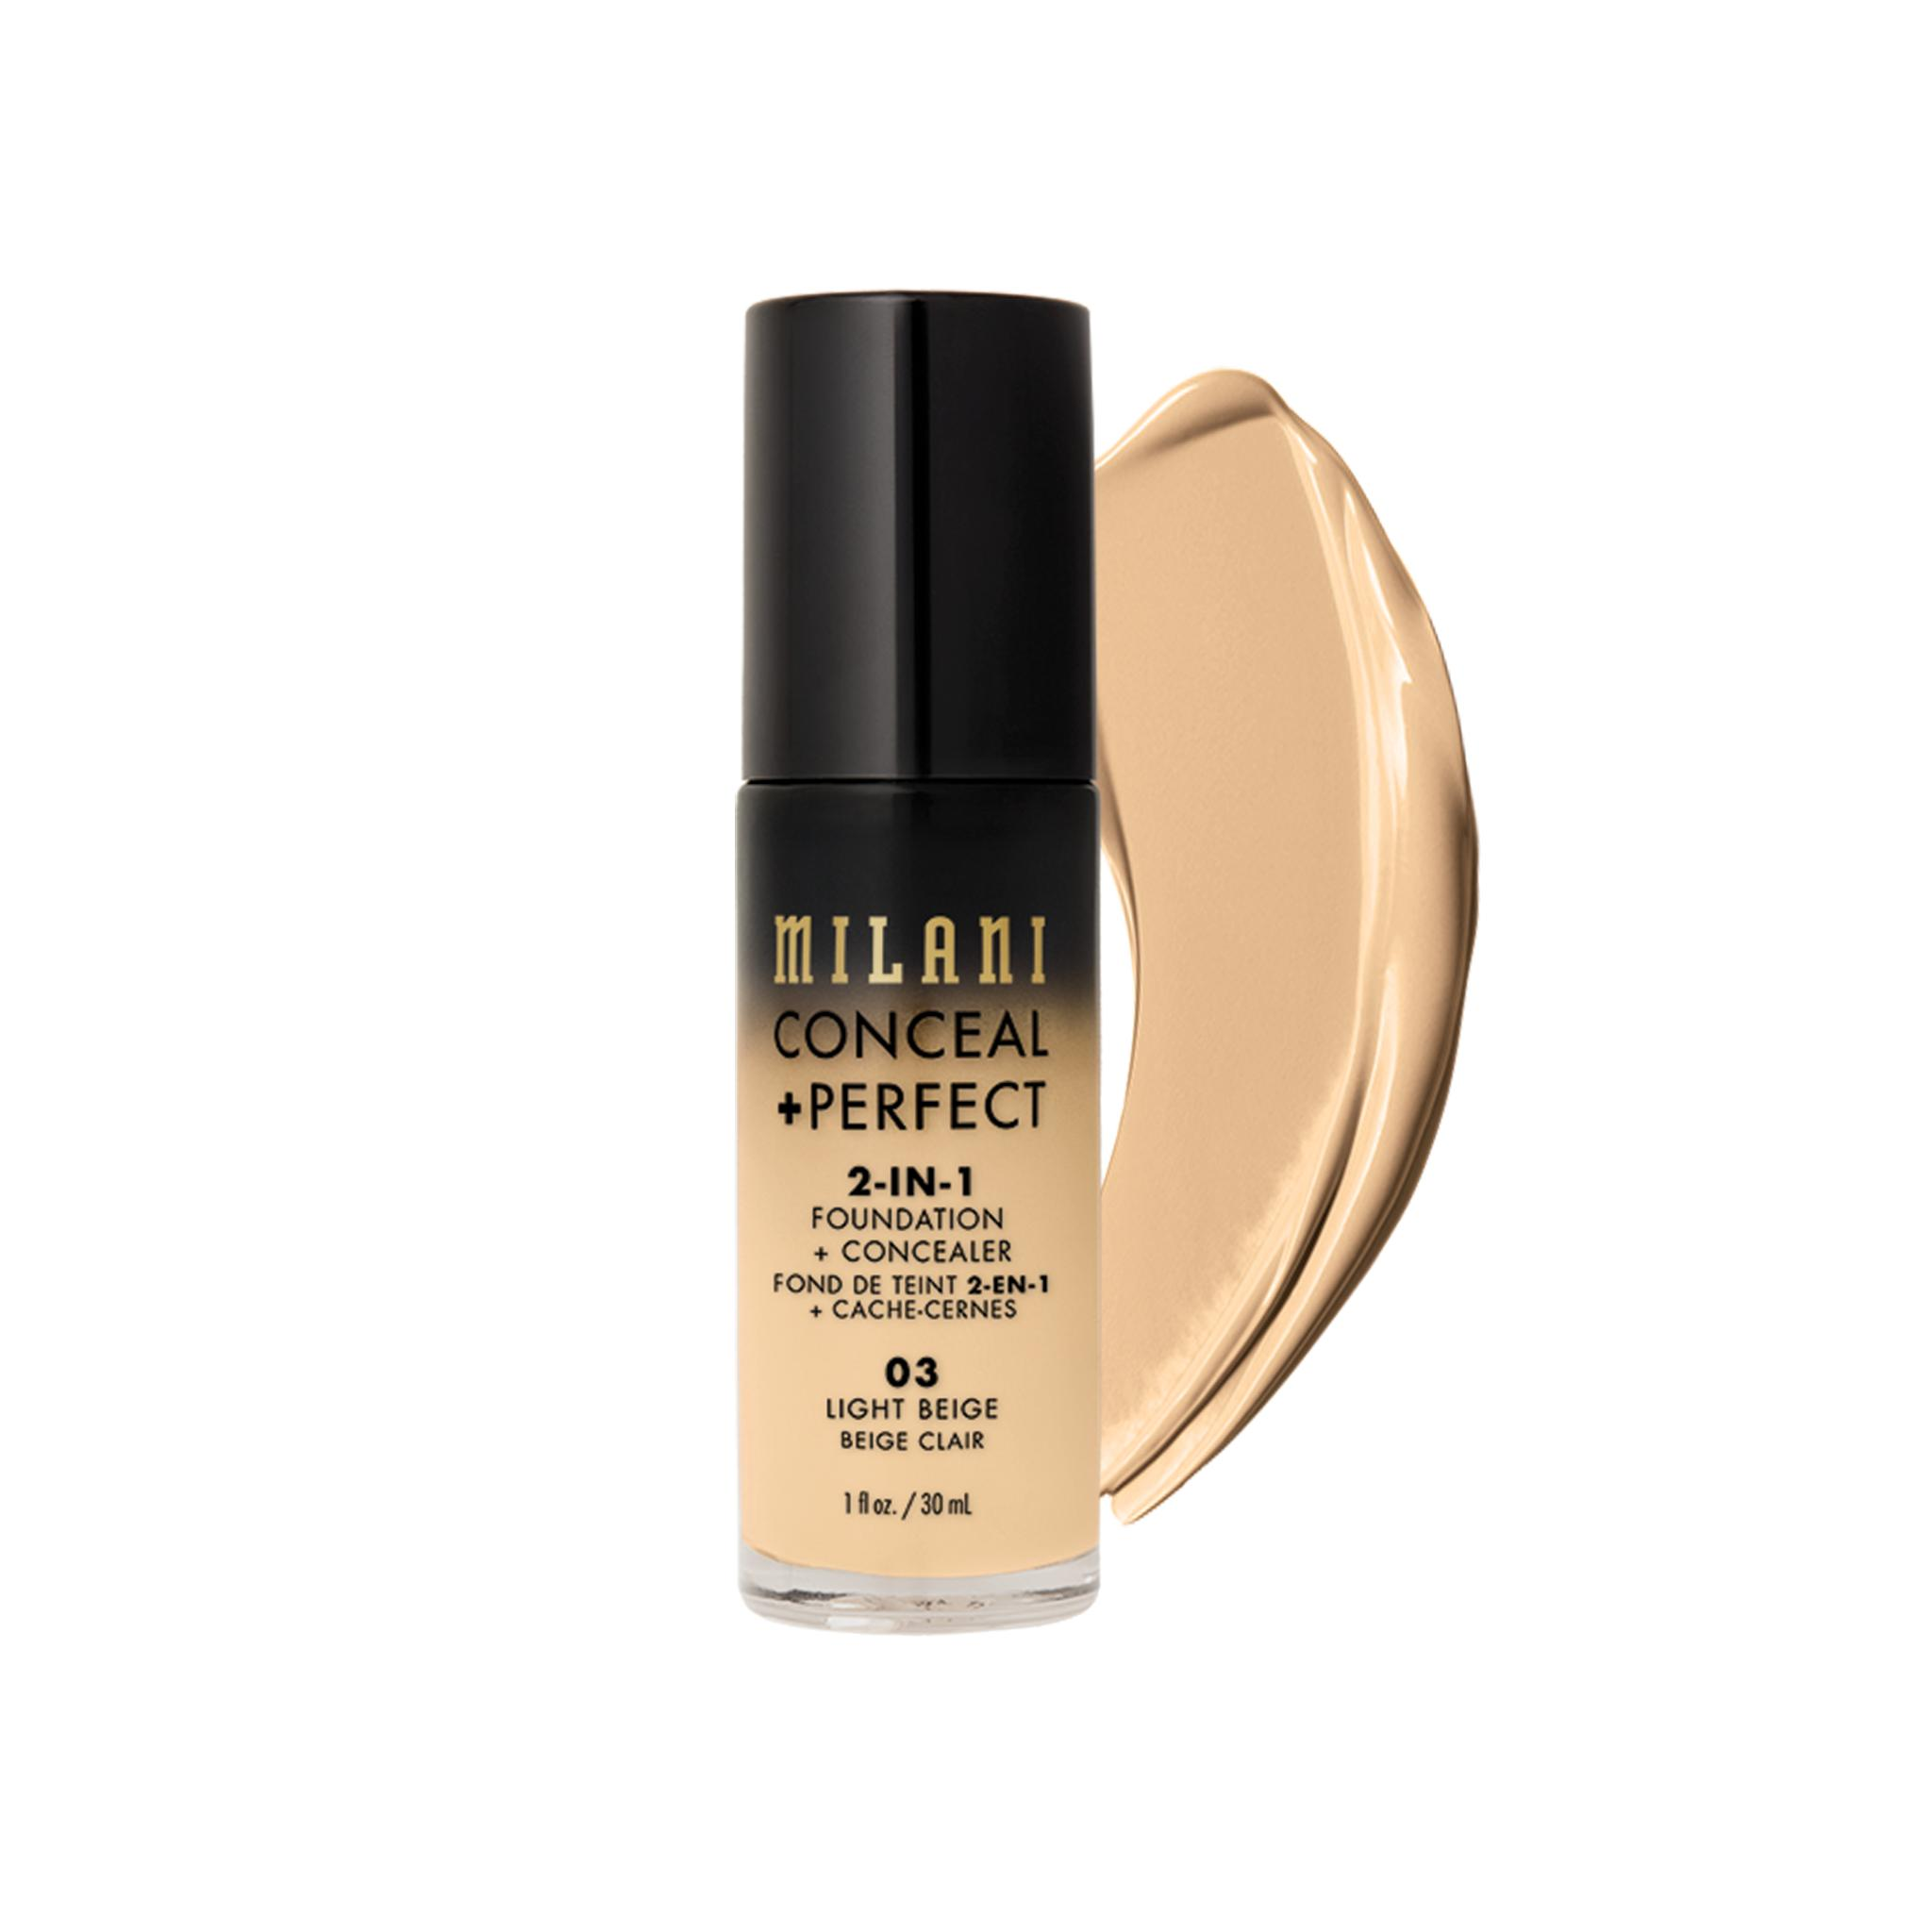 Milani Conceal + Perfect 2-In-1 - 03 Light Beige